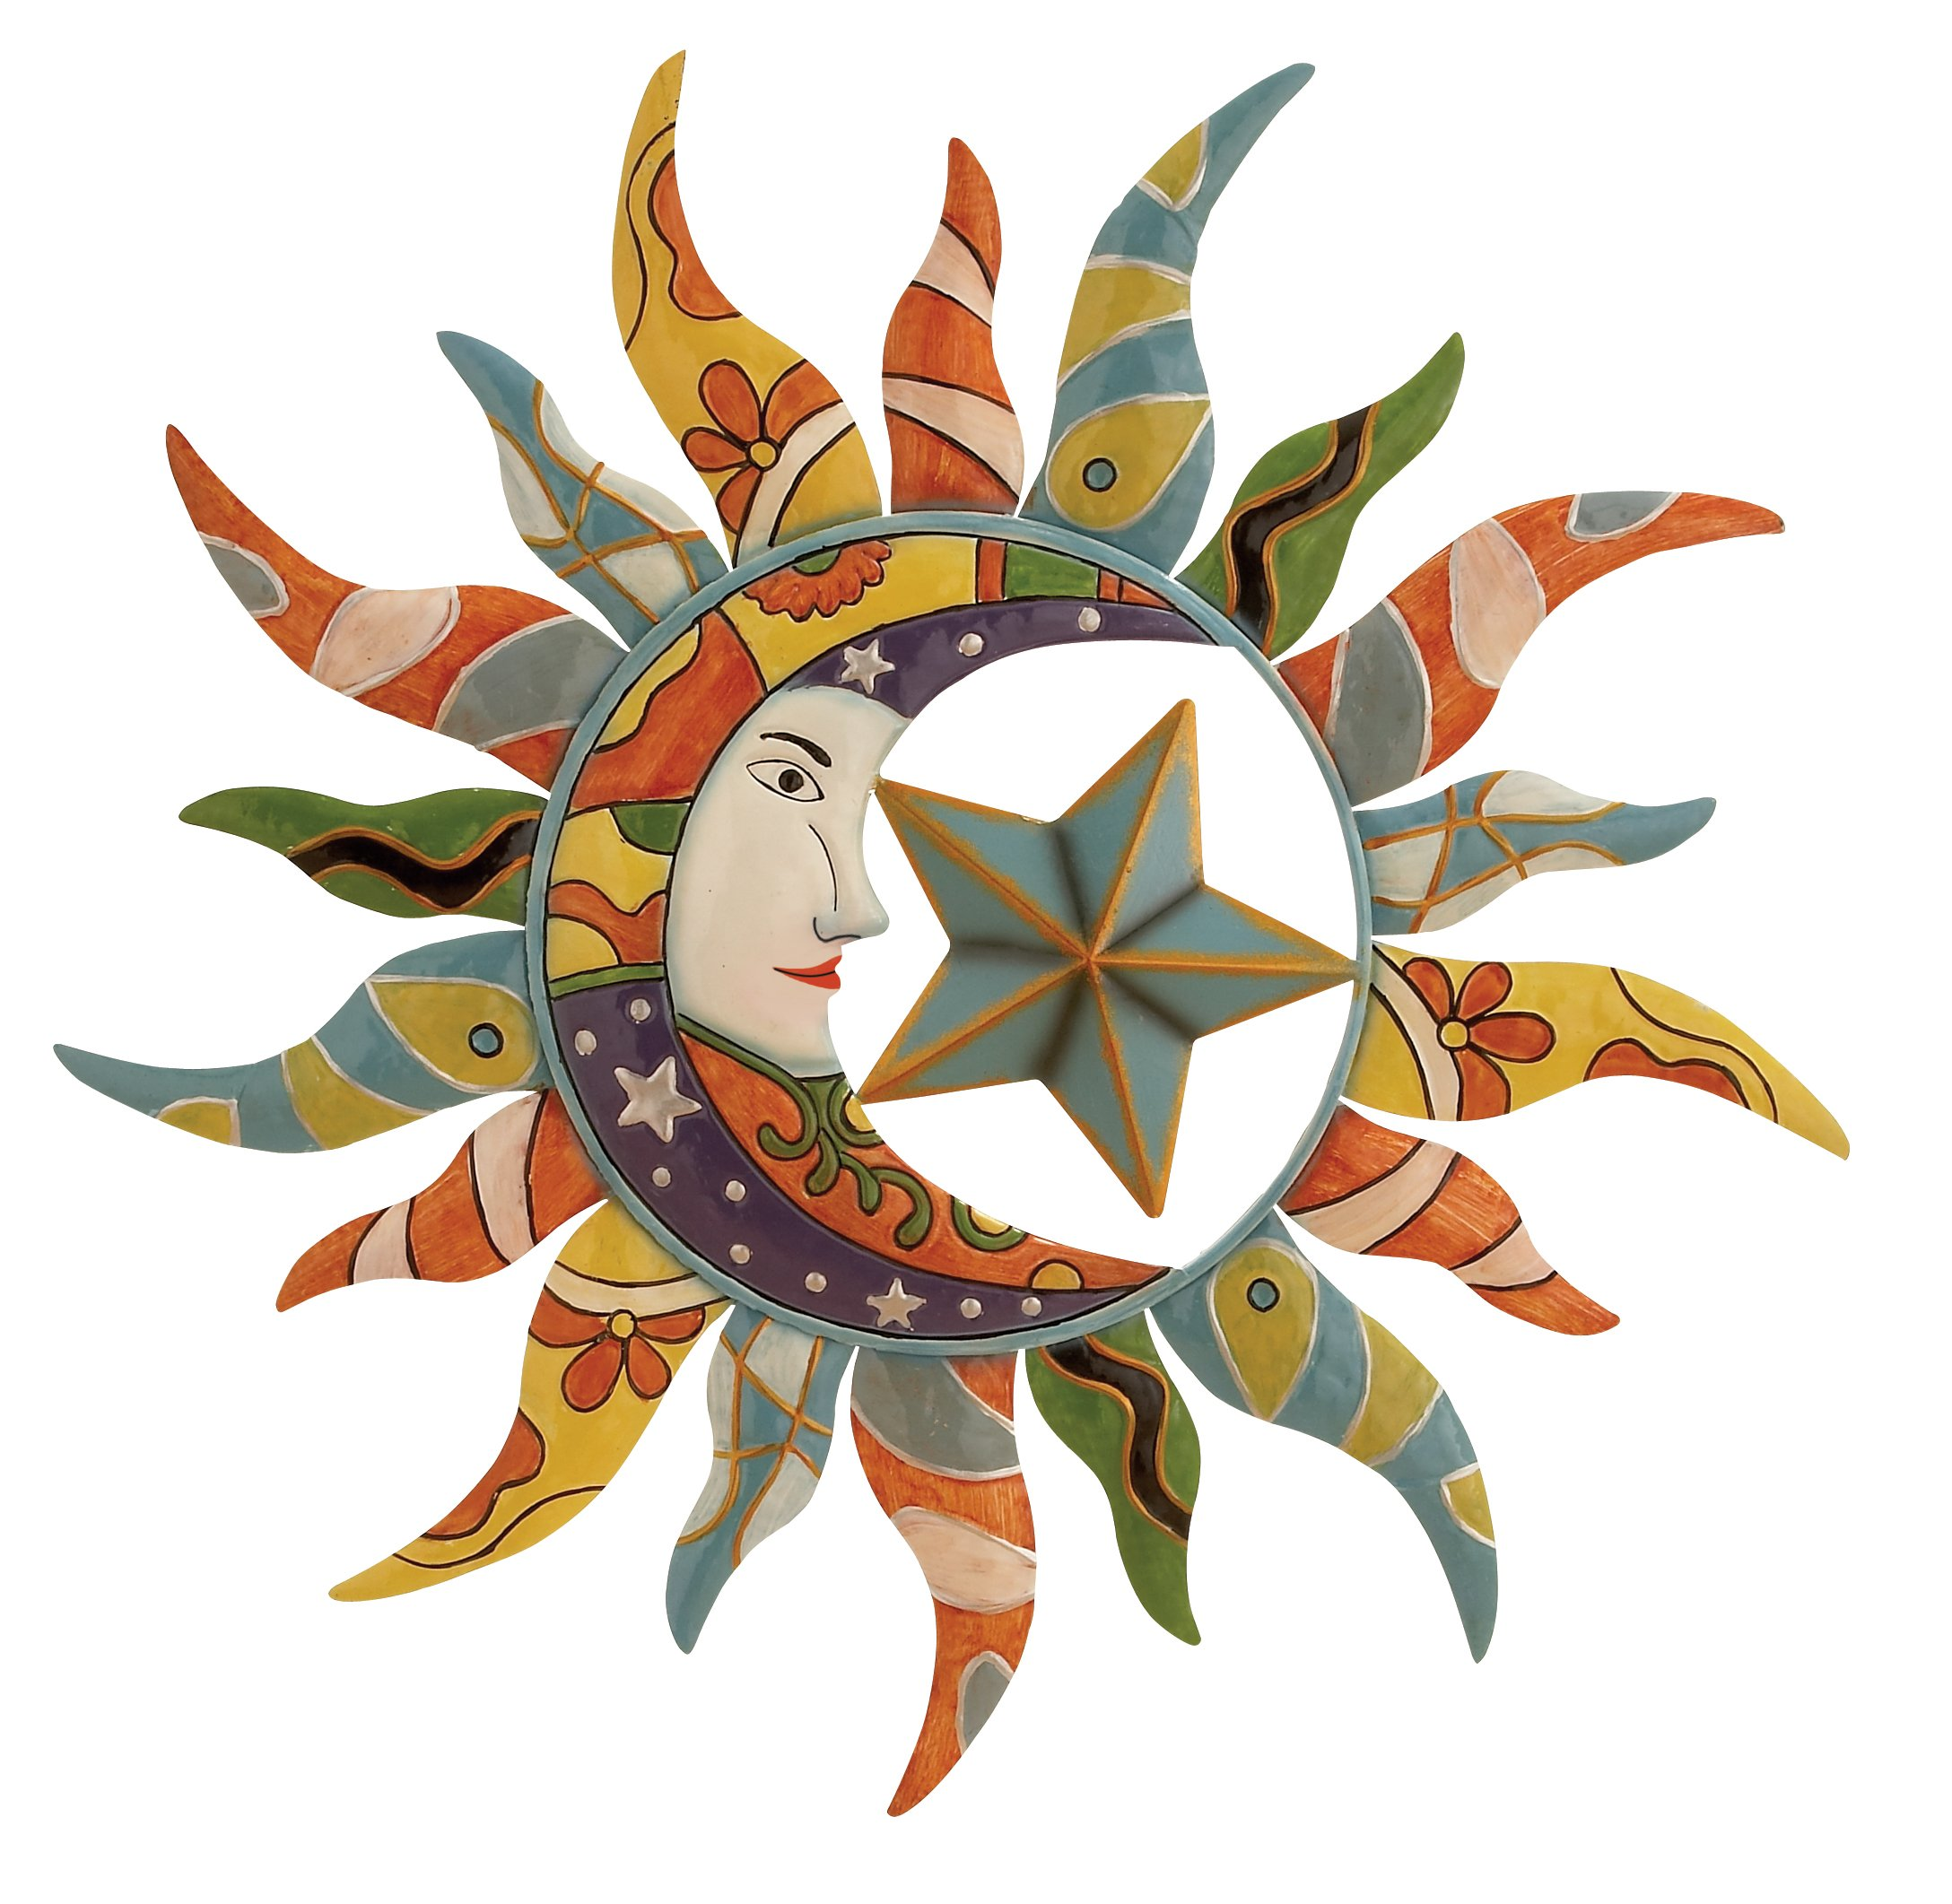 Deco 79 Modern Celestial-Themed Metal Wall Decor, 25''Diameter, Beautiful Multicolored Finish by Deco 79